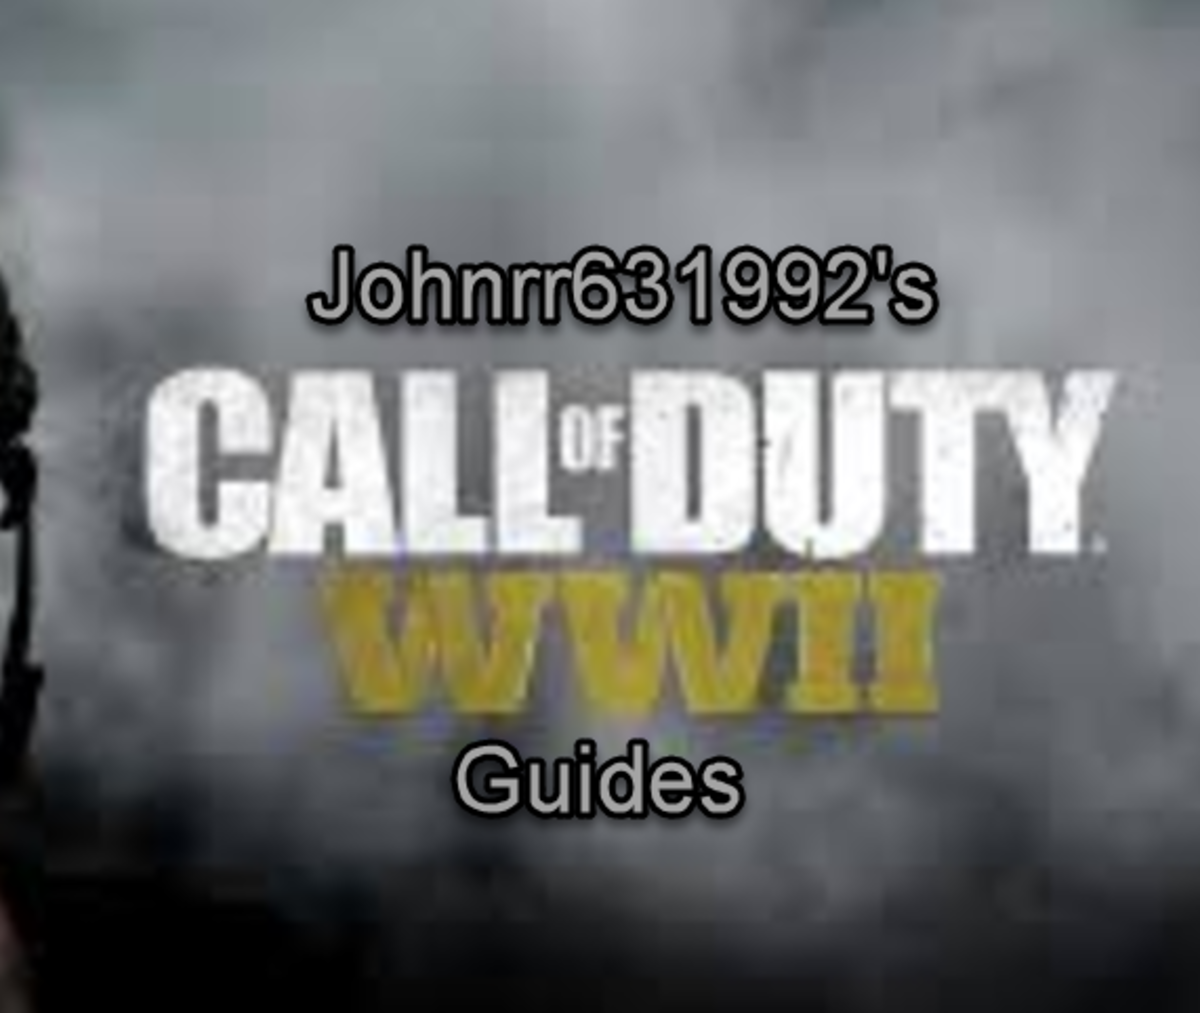 Call of Duty WWII: Tips and Strategy for Hardcore Domination